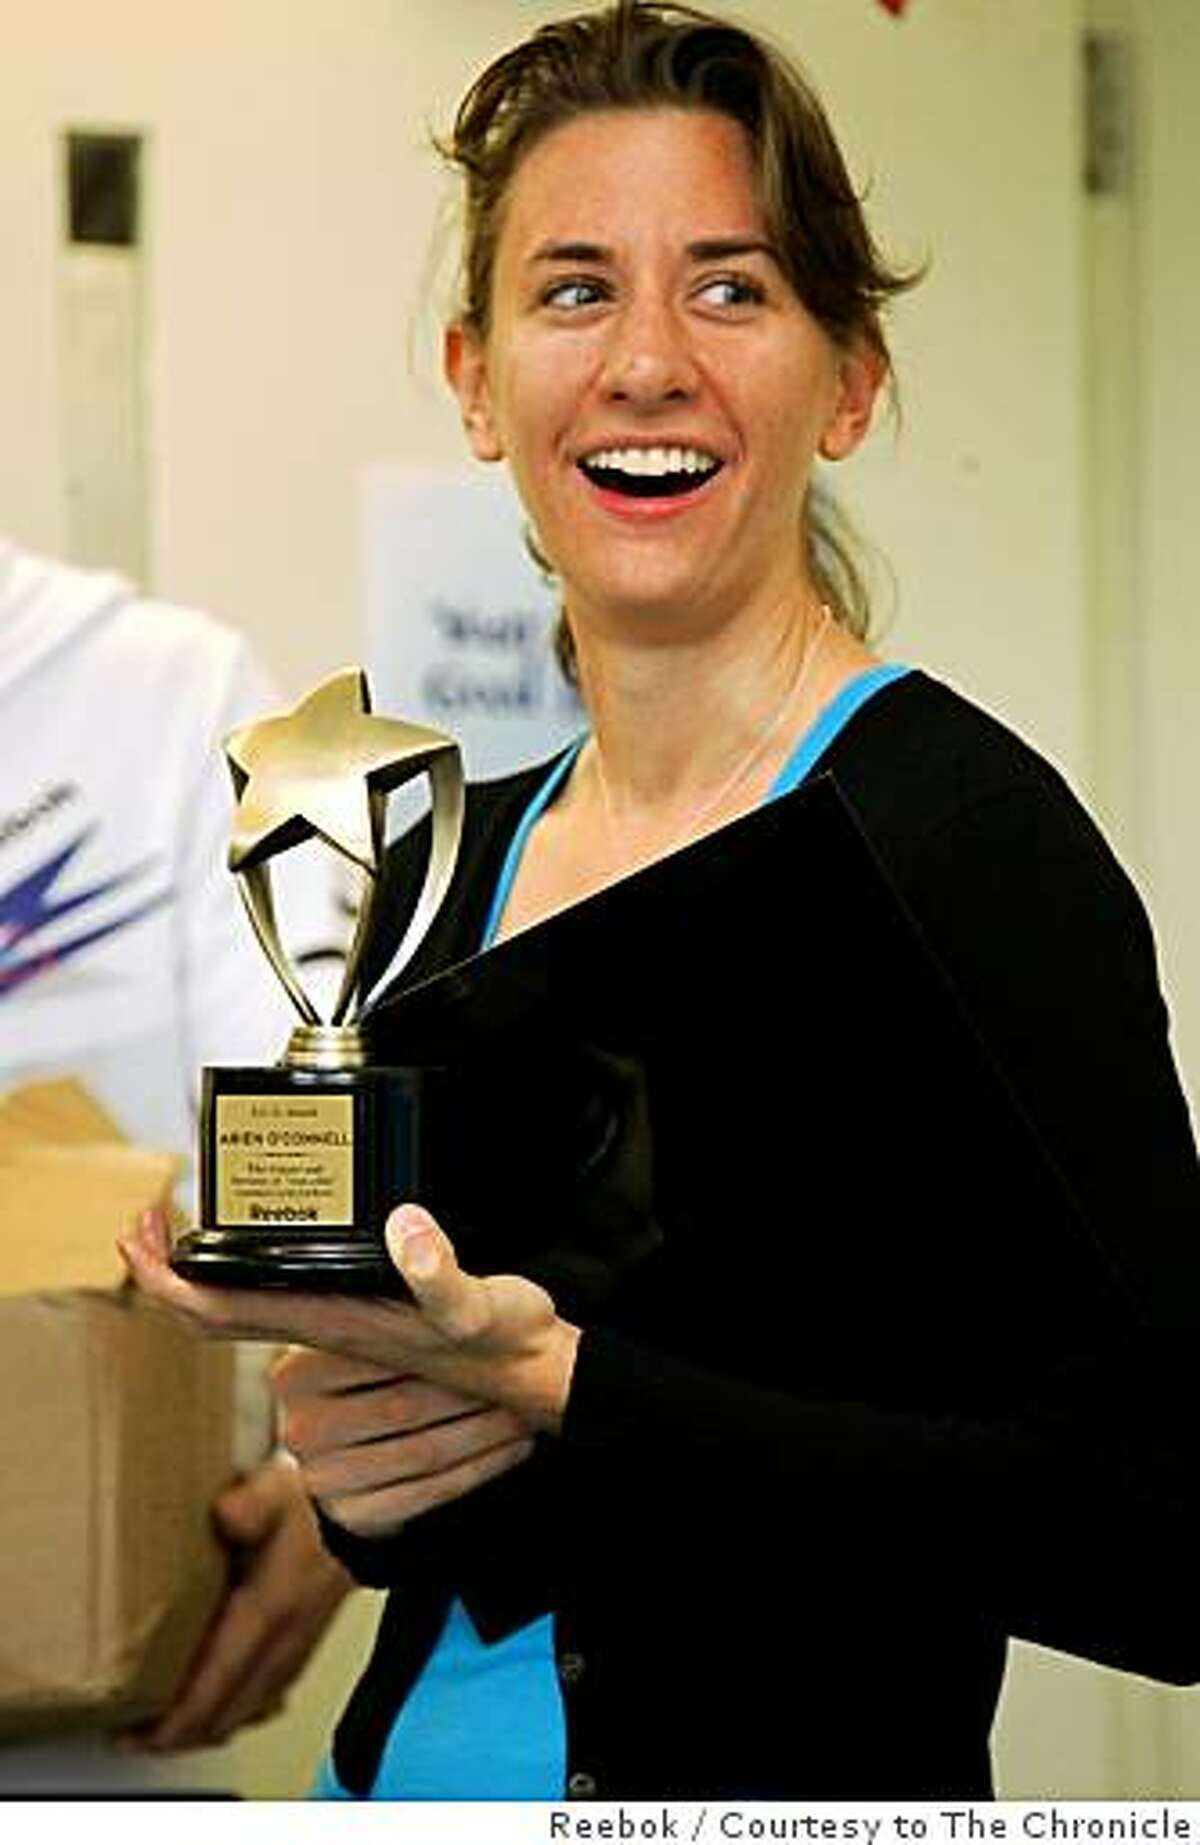 Arien O'Connell accepts a trophy In New York from the Reebok company in recognition of running the fastest time at the San Francisco Nike Women's Marathon.